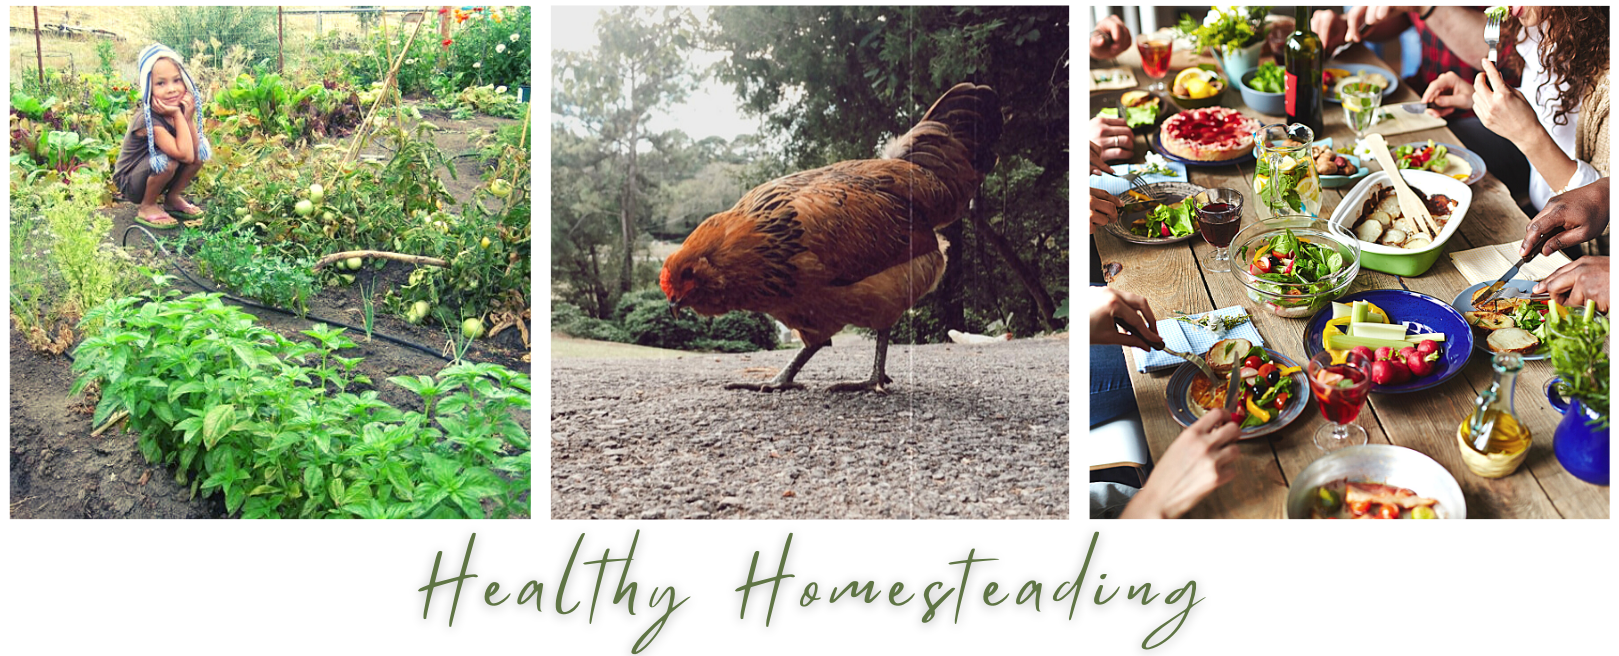 Healthy Homesteading